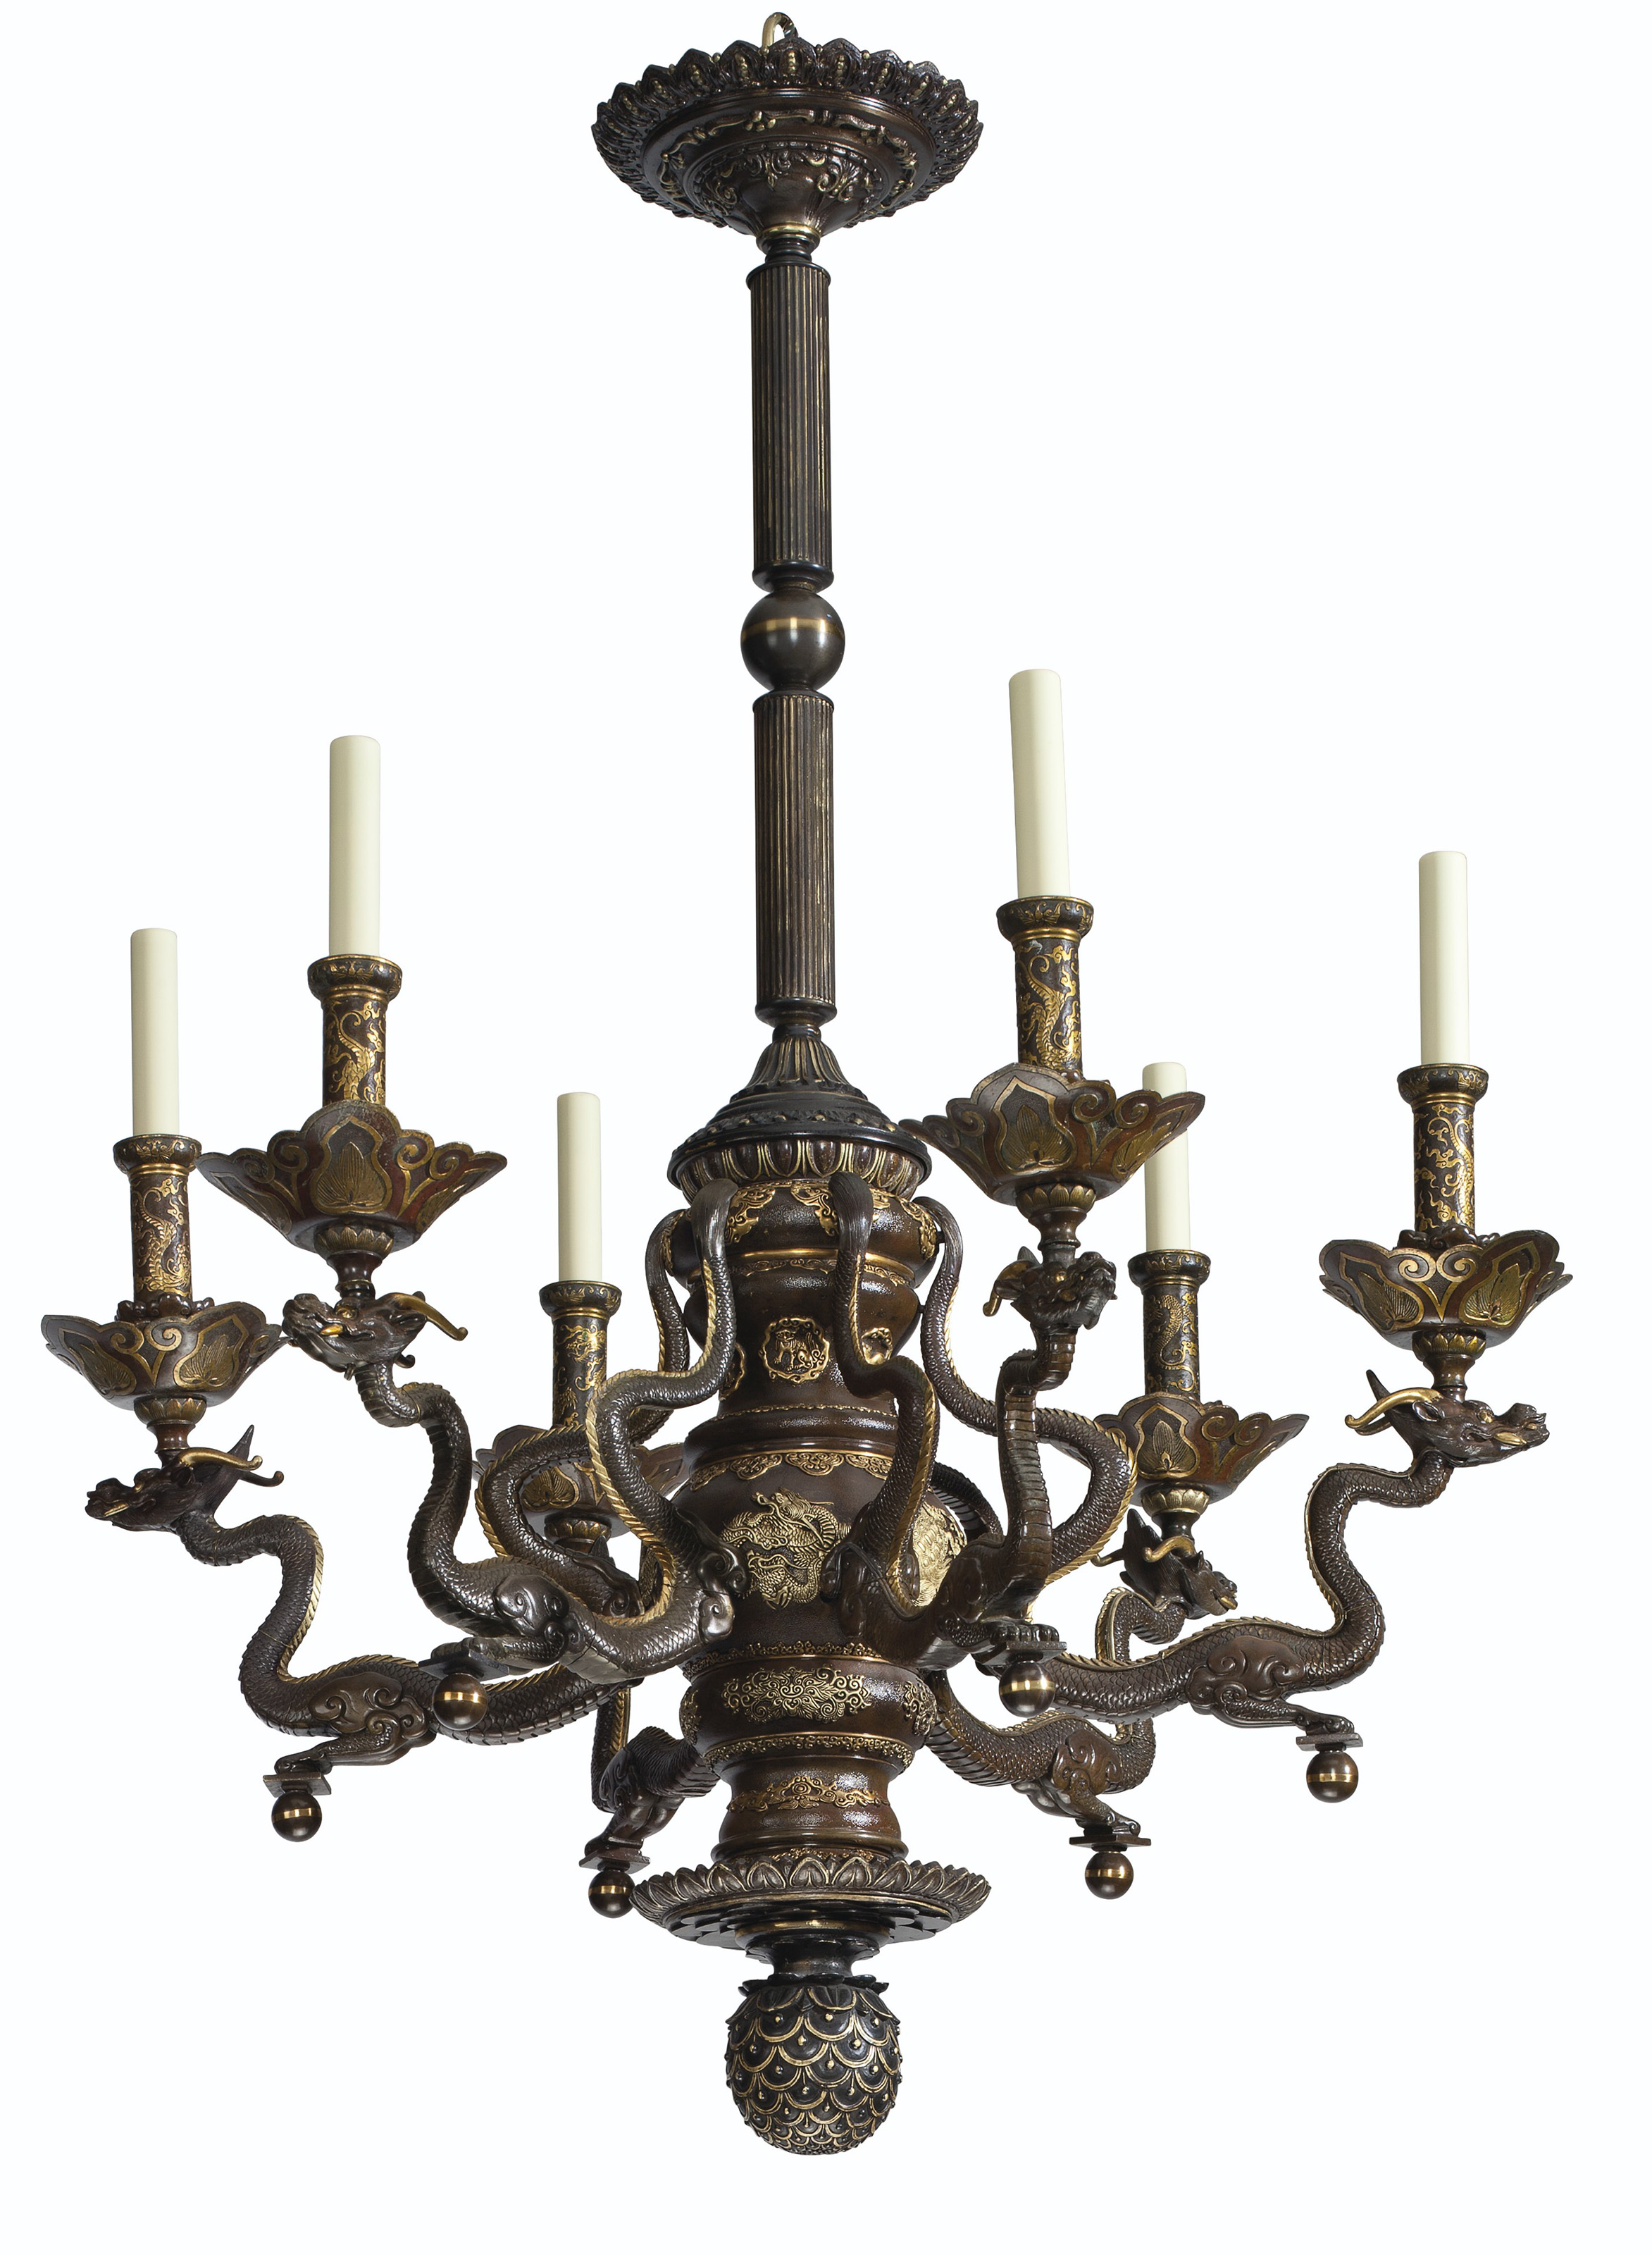 A PAIR OF PATINATED AND PARCEL-GILT-BRONZE SIX-LIGHT CHANDELIERS